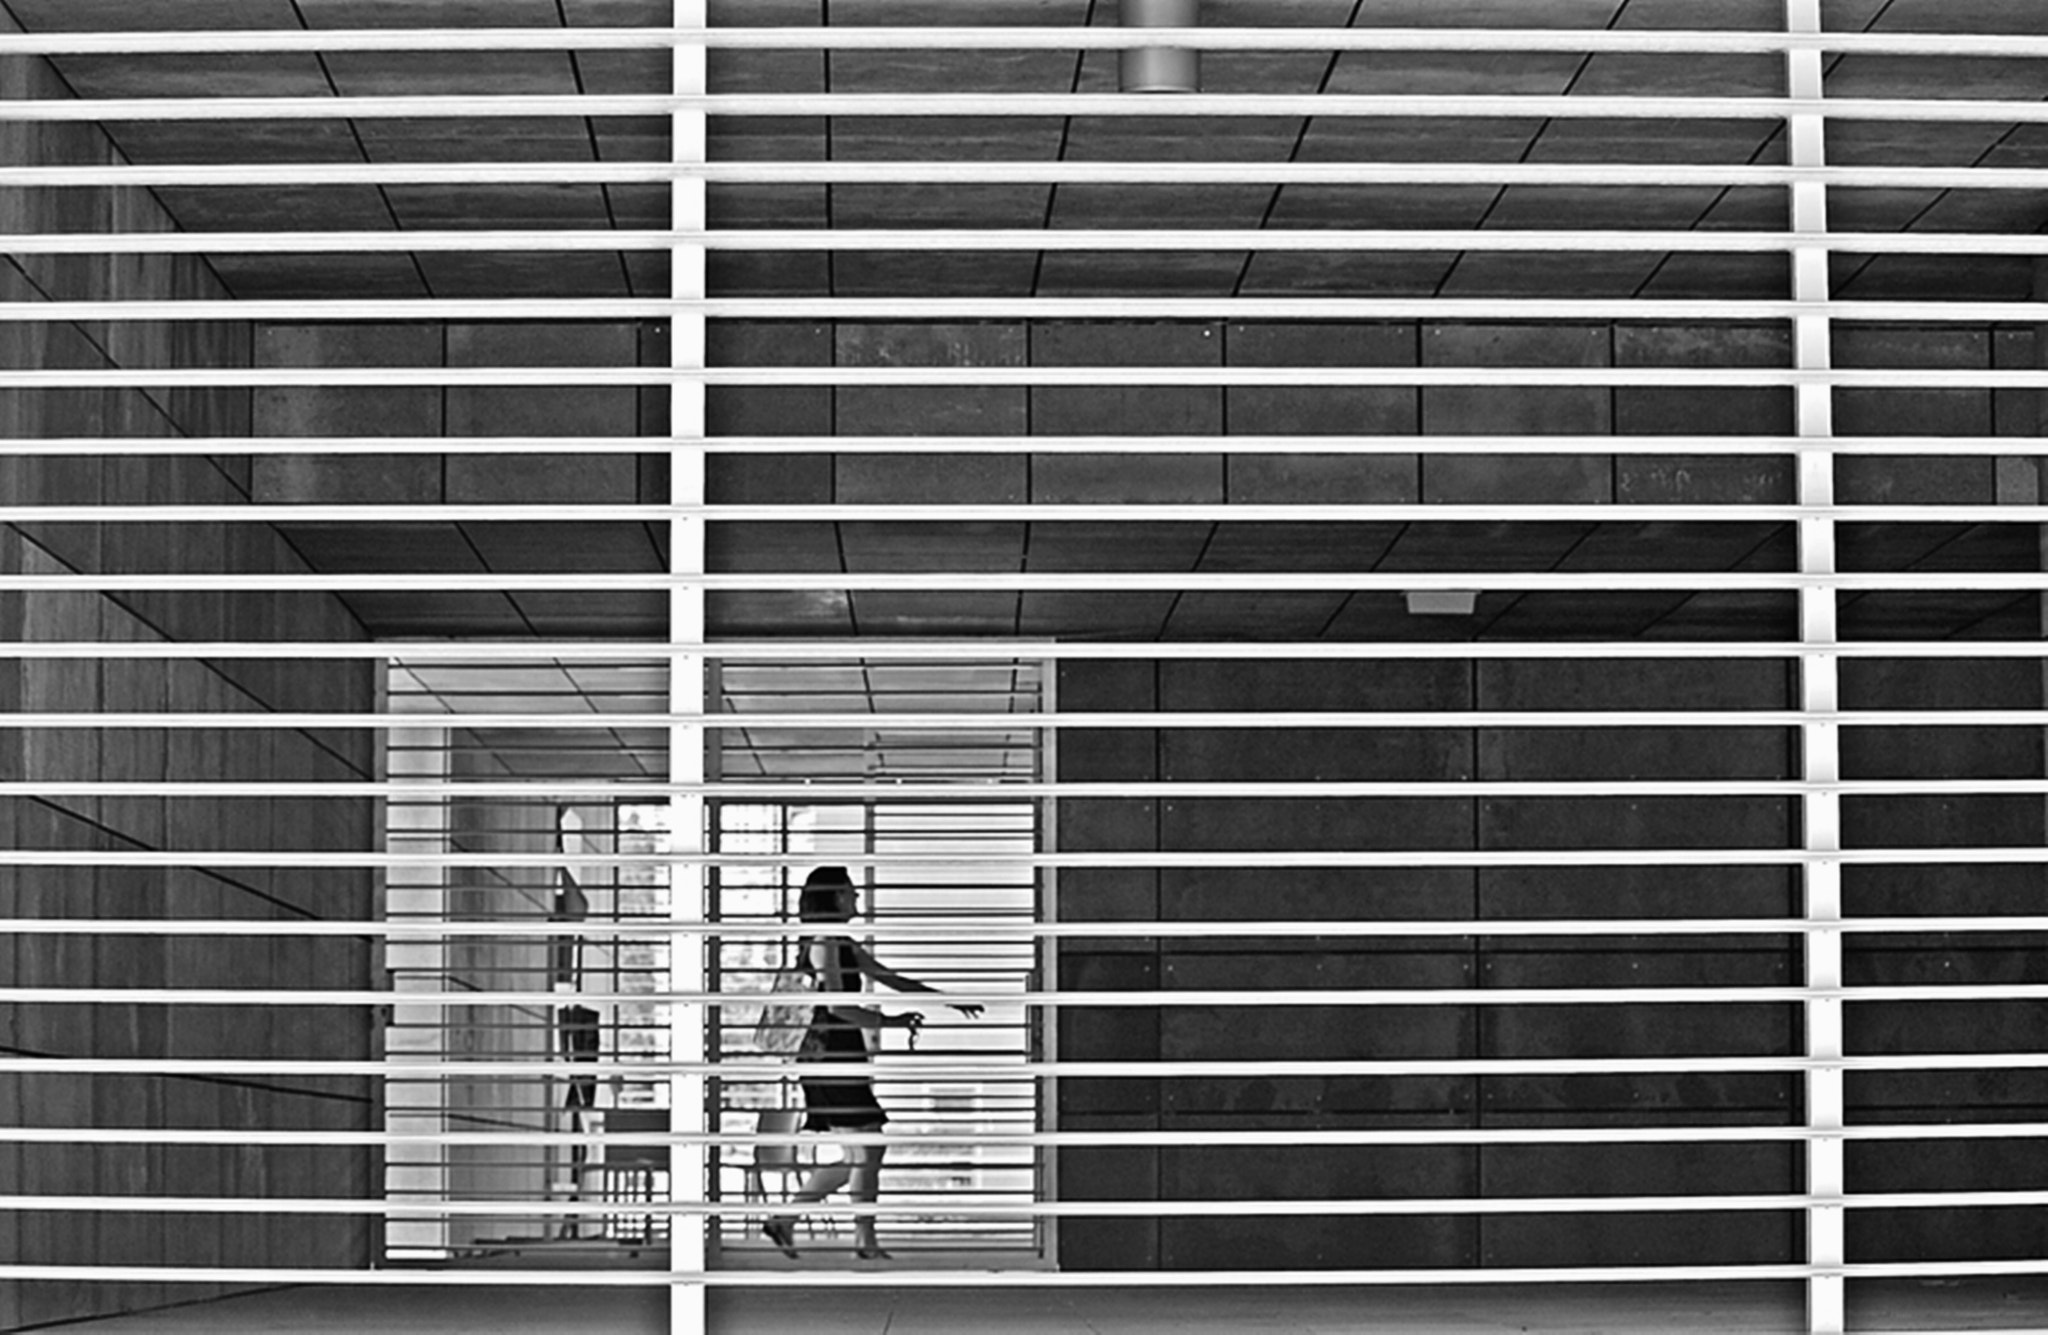 Photograph The intricate lines of life. by Miguel Silva on 500px